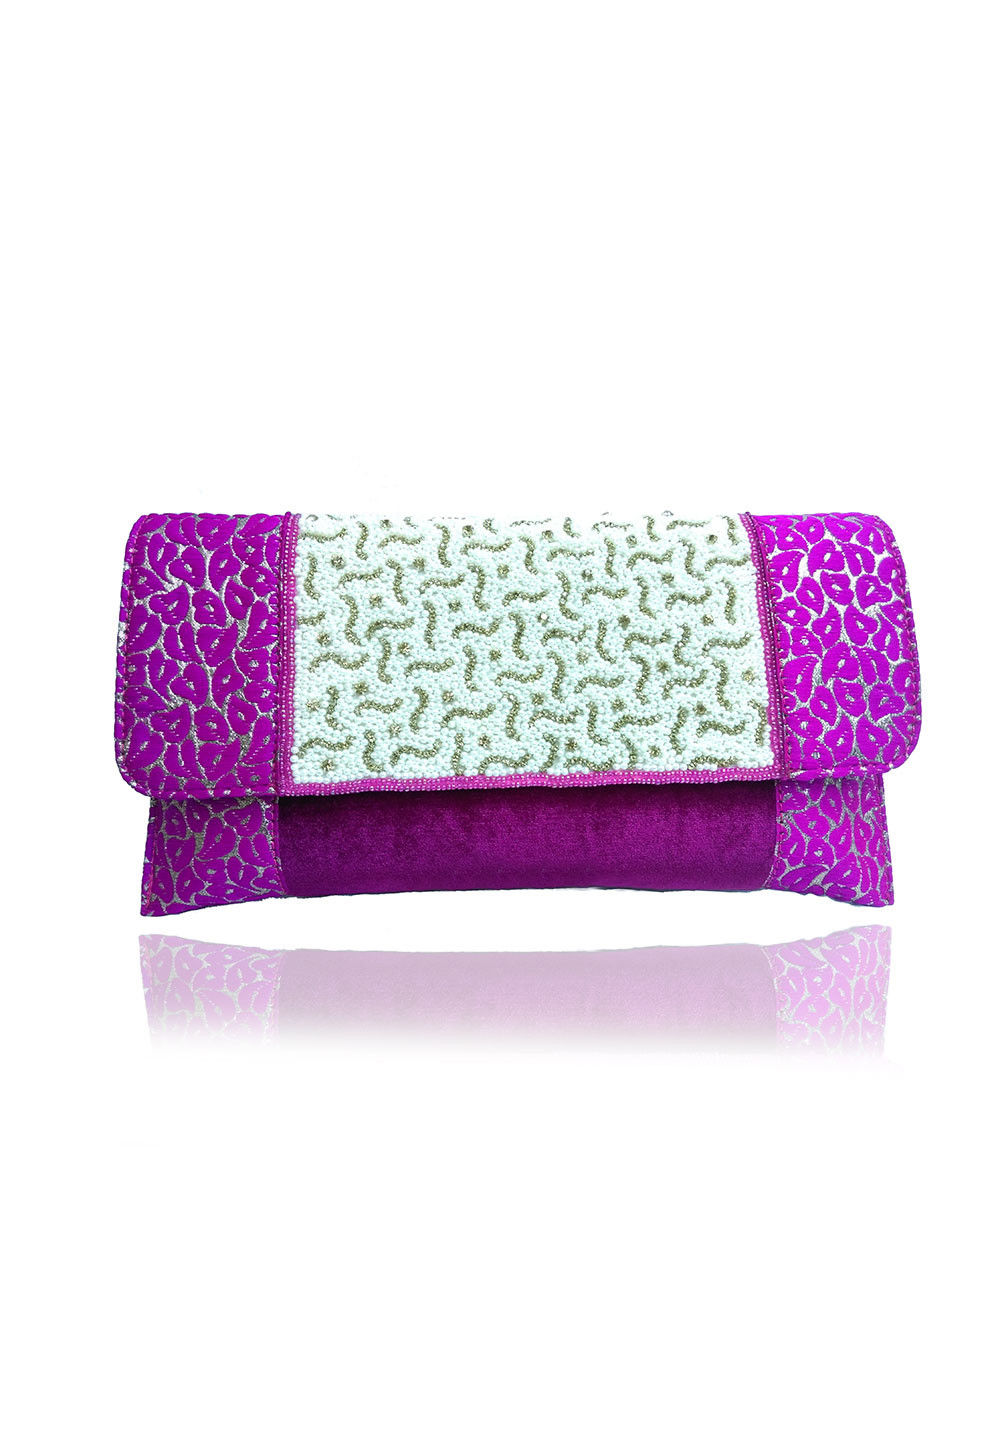 Embroidered Brocade and Velvet Clutch Bag in fuchsia and White